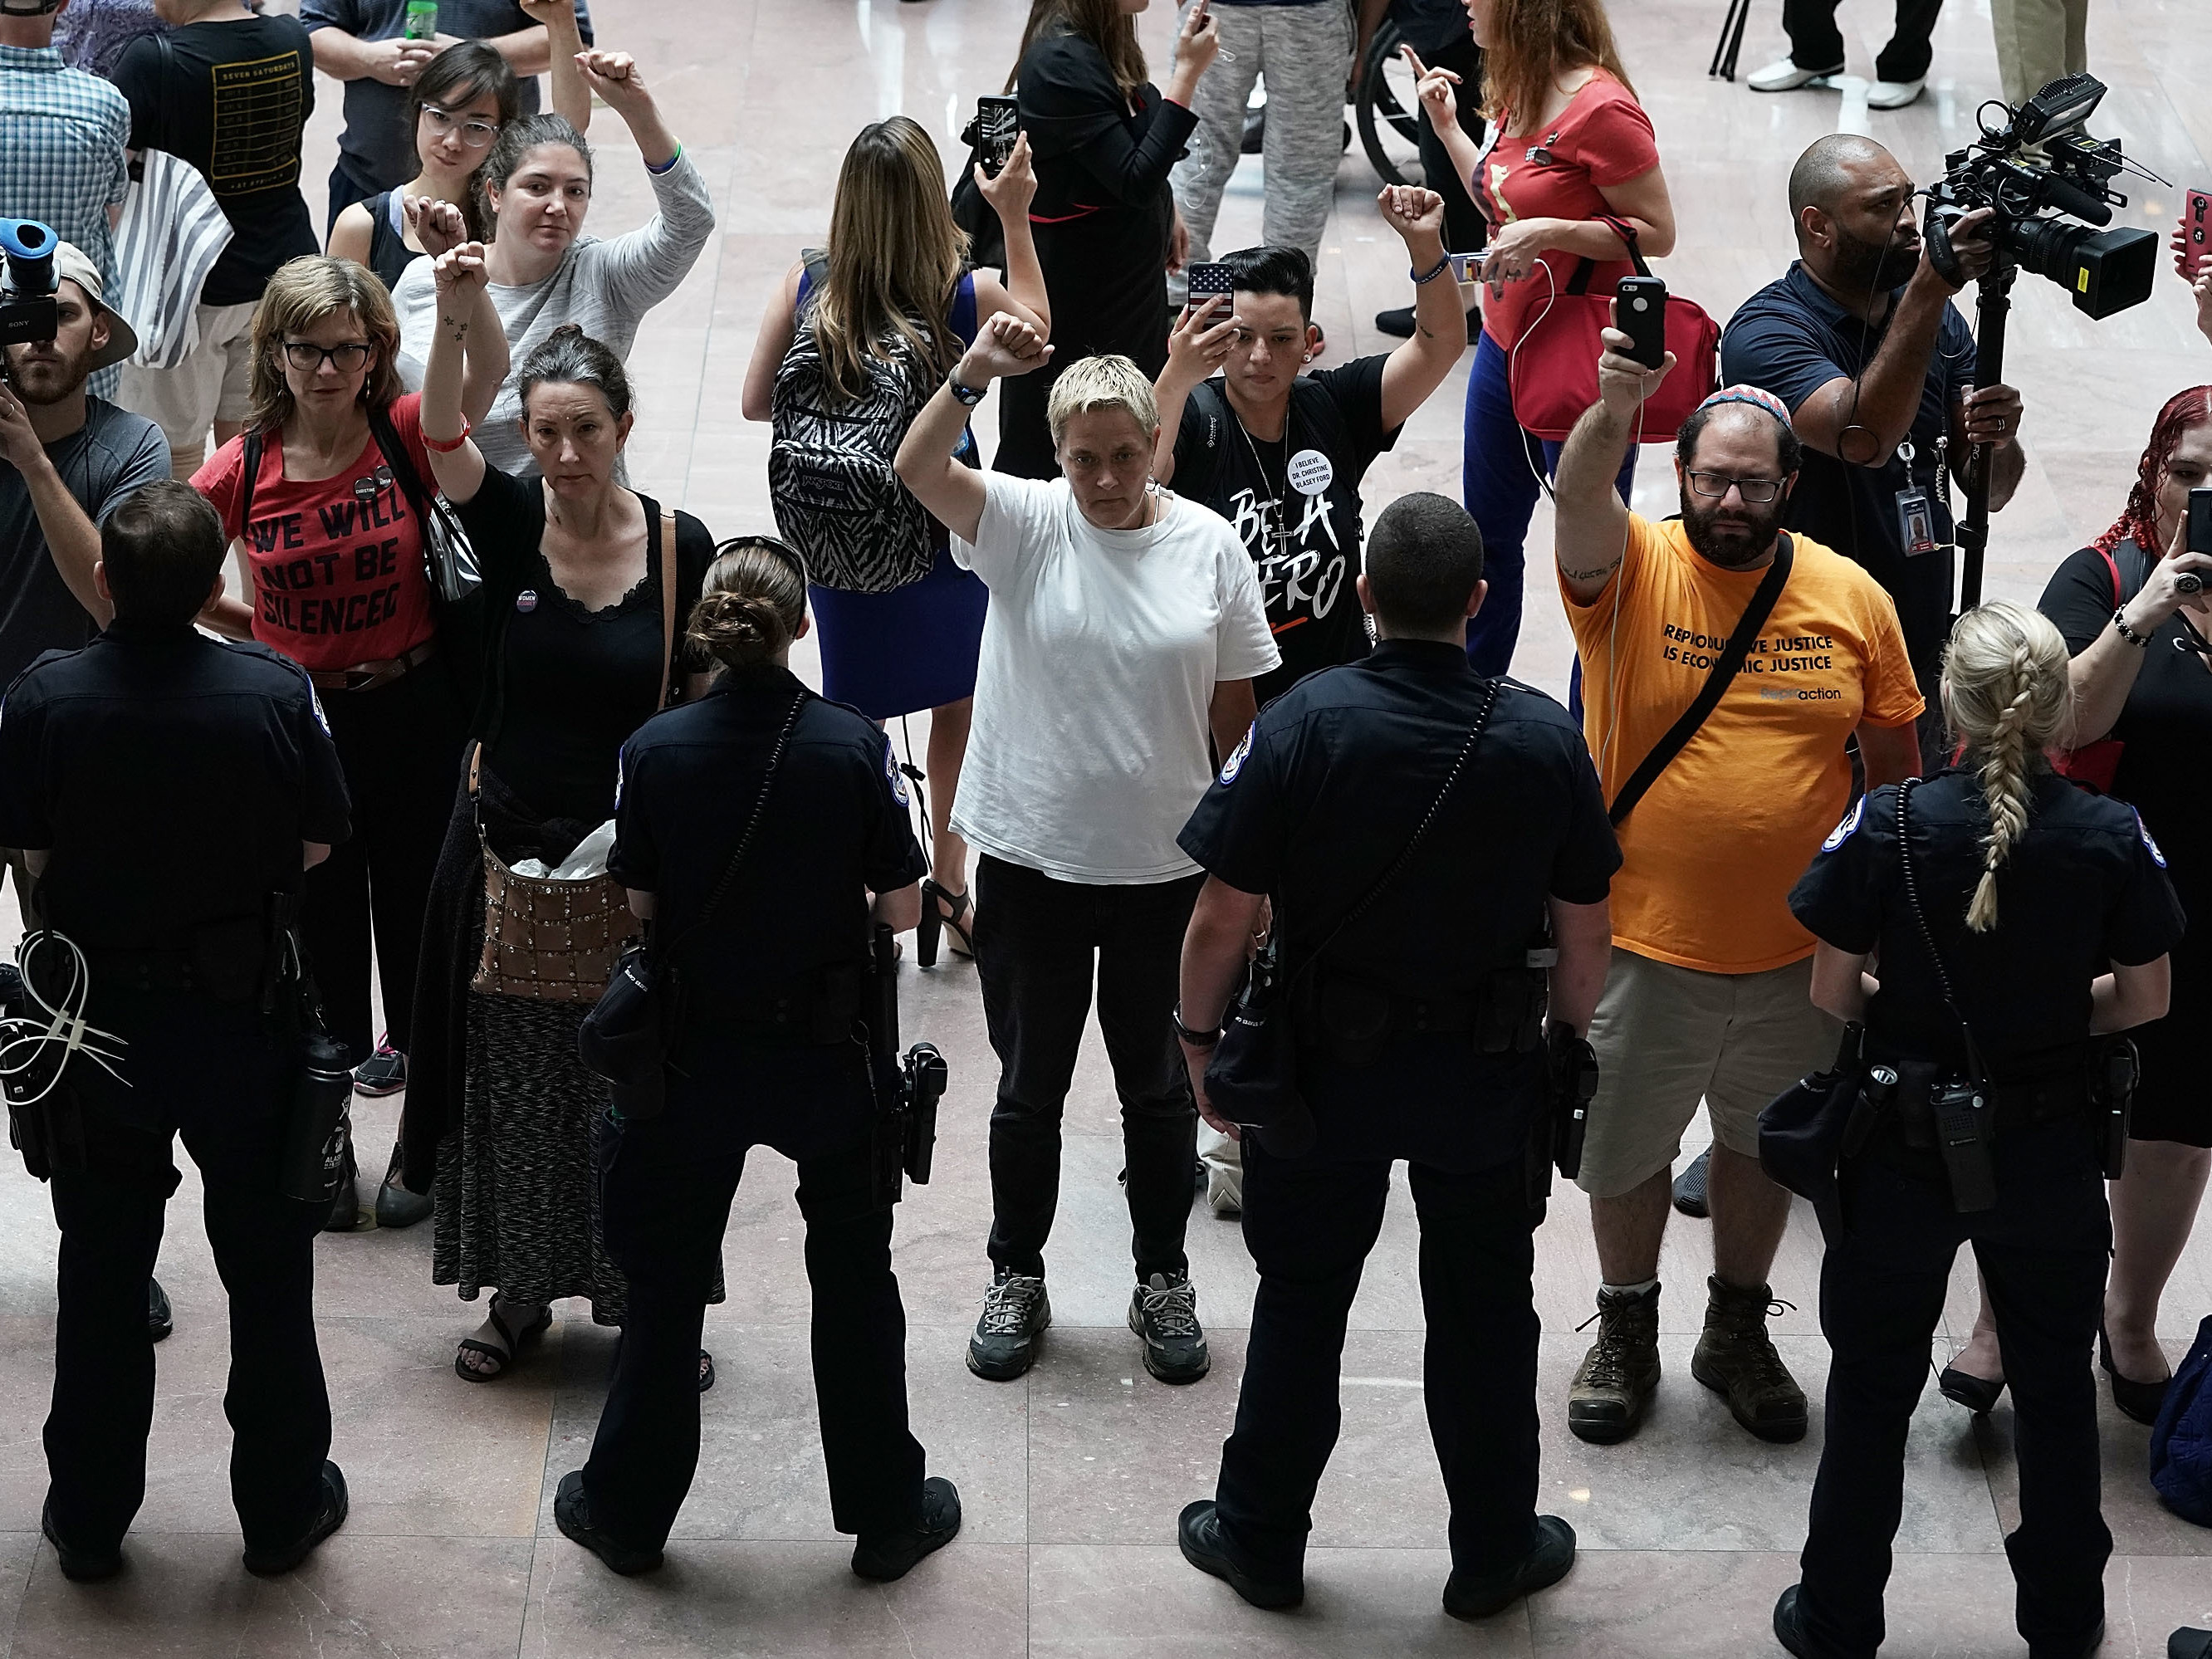 Senate To Get Fbi Report On Kavanaugh Setting Up Finale In Confirmation Watch And Latest News Judiciary Committee Activists Chant During A Protest Outside The Office Of Chairman Chuck Grassley Iowa